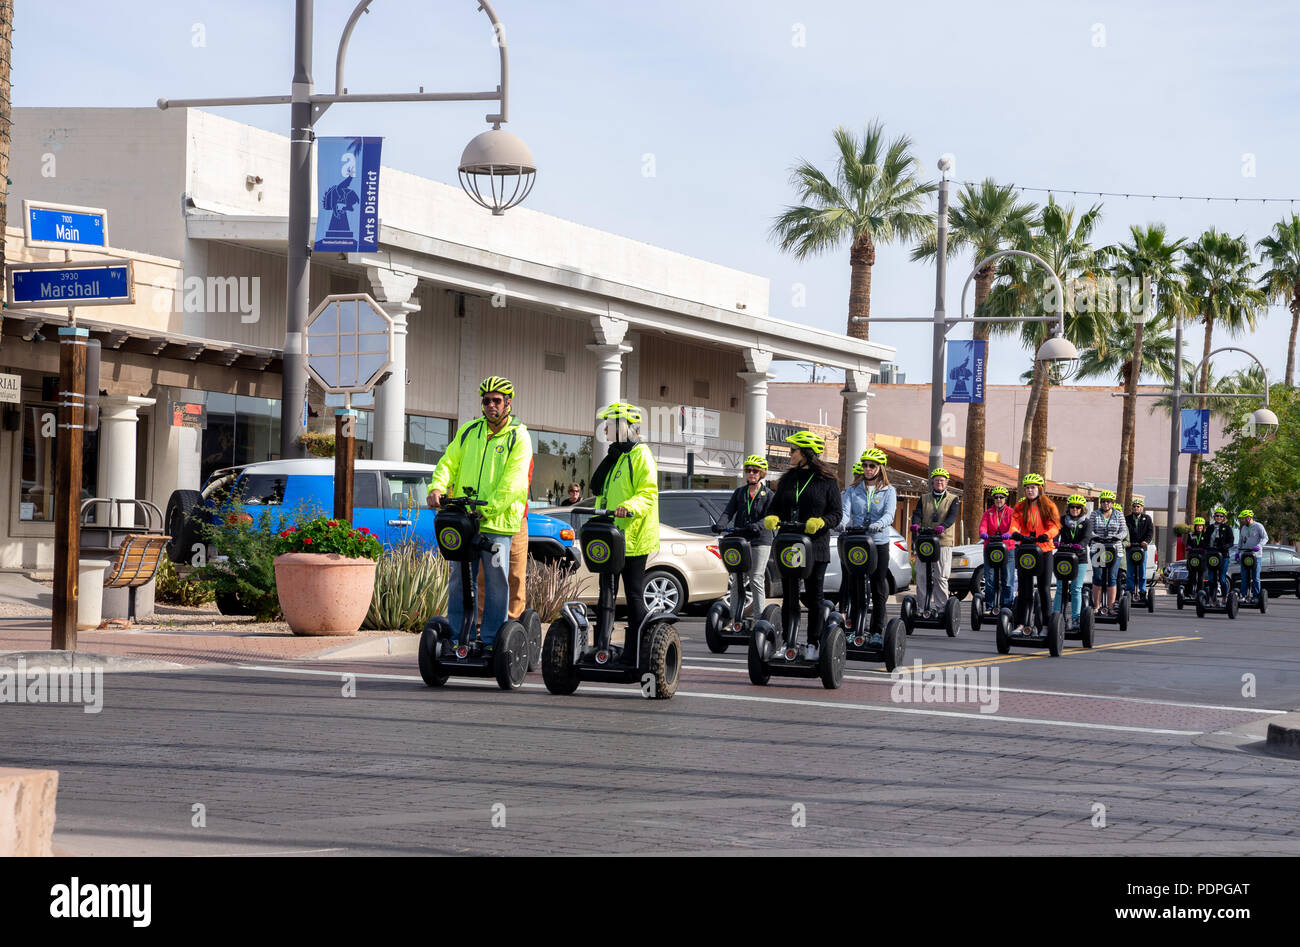 Scottsdale,AZ/USA -1.22.18: Segway 2-wheel,self-balancing transporter Invented by Dean Kamen and brought to market in 2001; Seen here Scottsdale Segwa Stock Photo